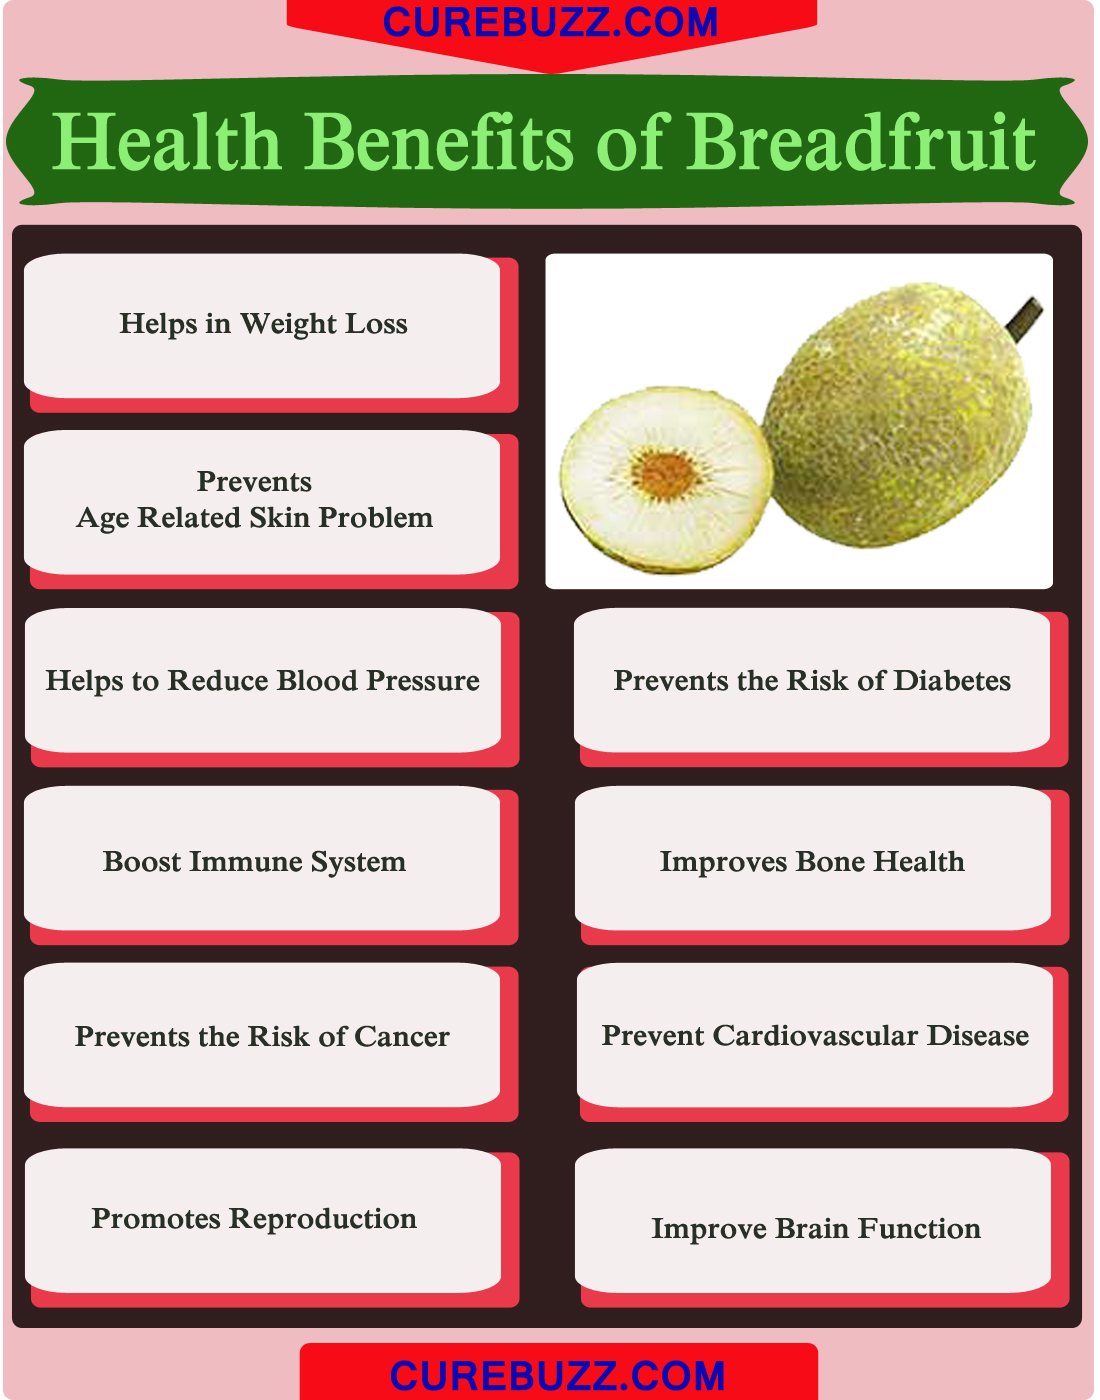 10 health benefits of breadfruit : curebuzz